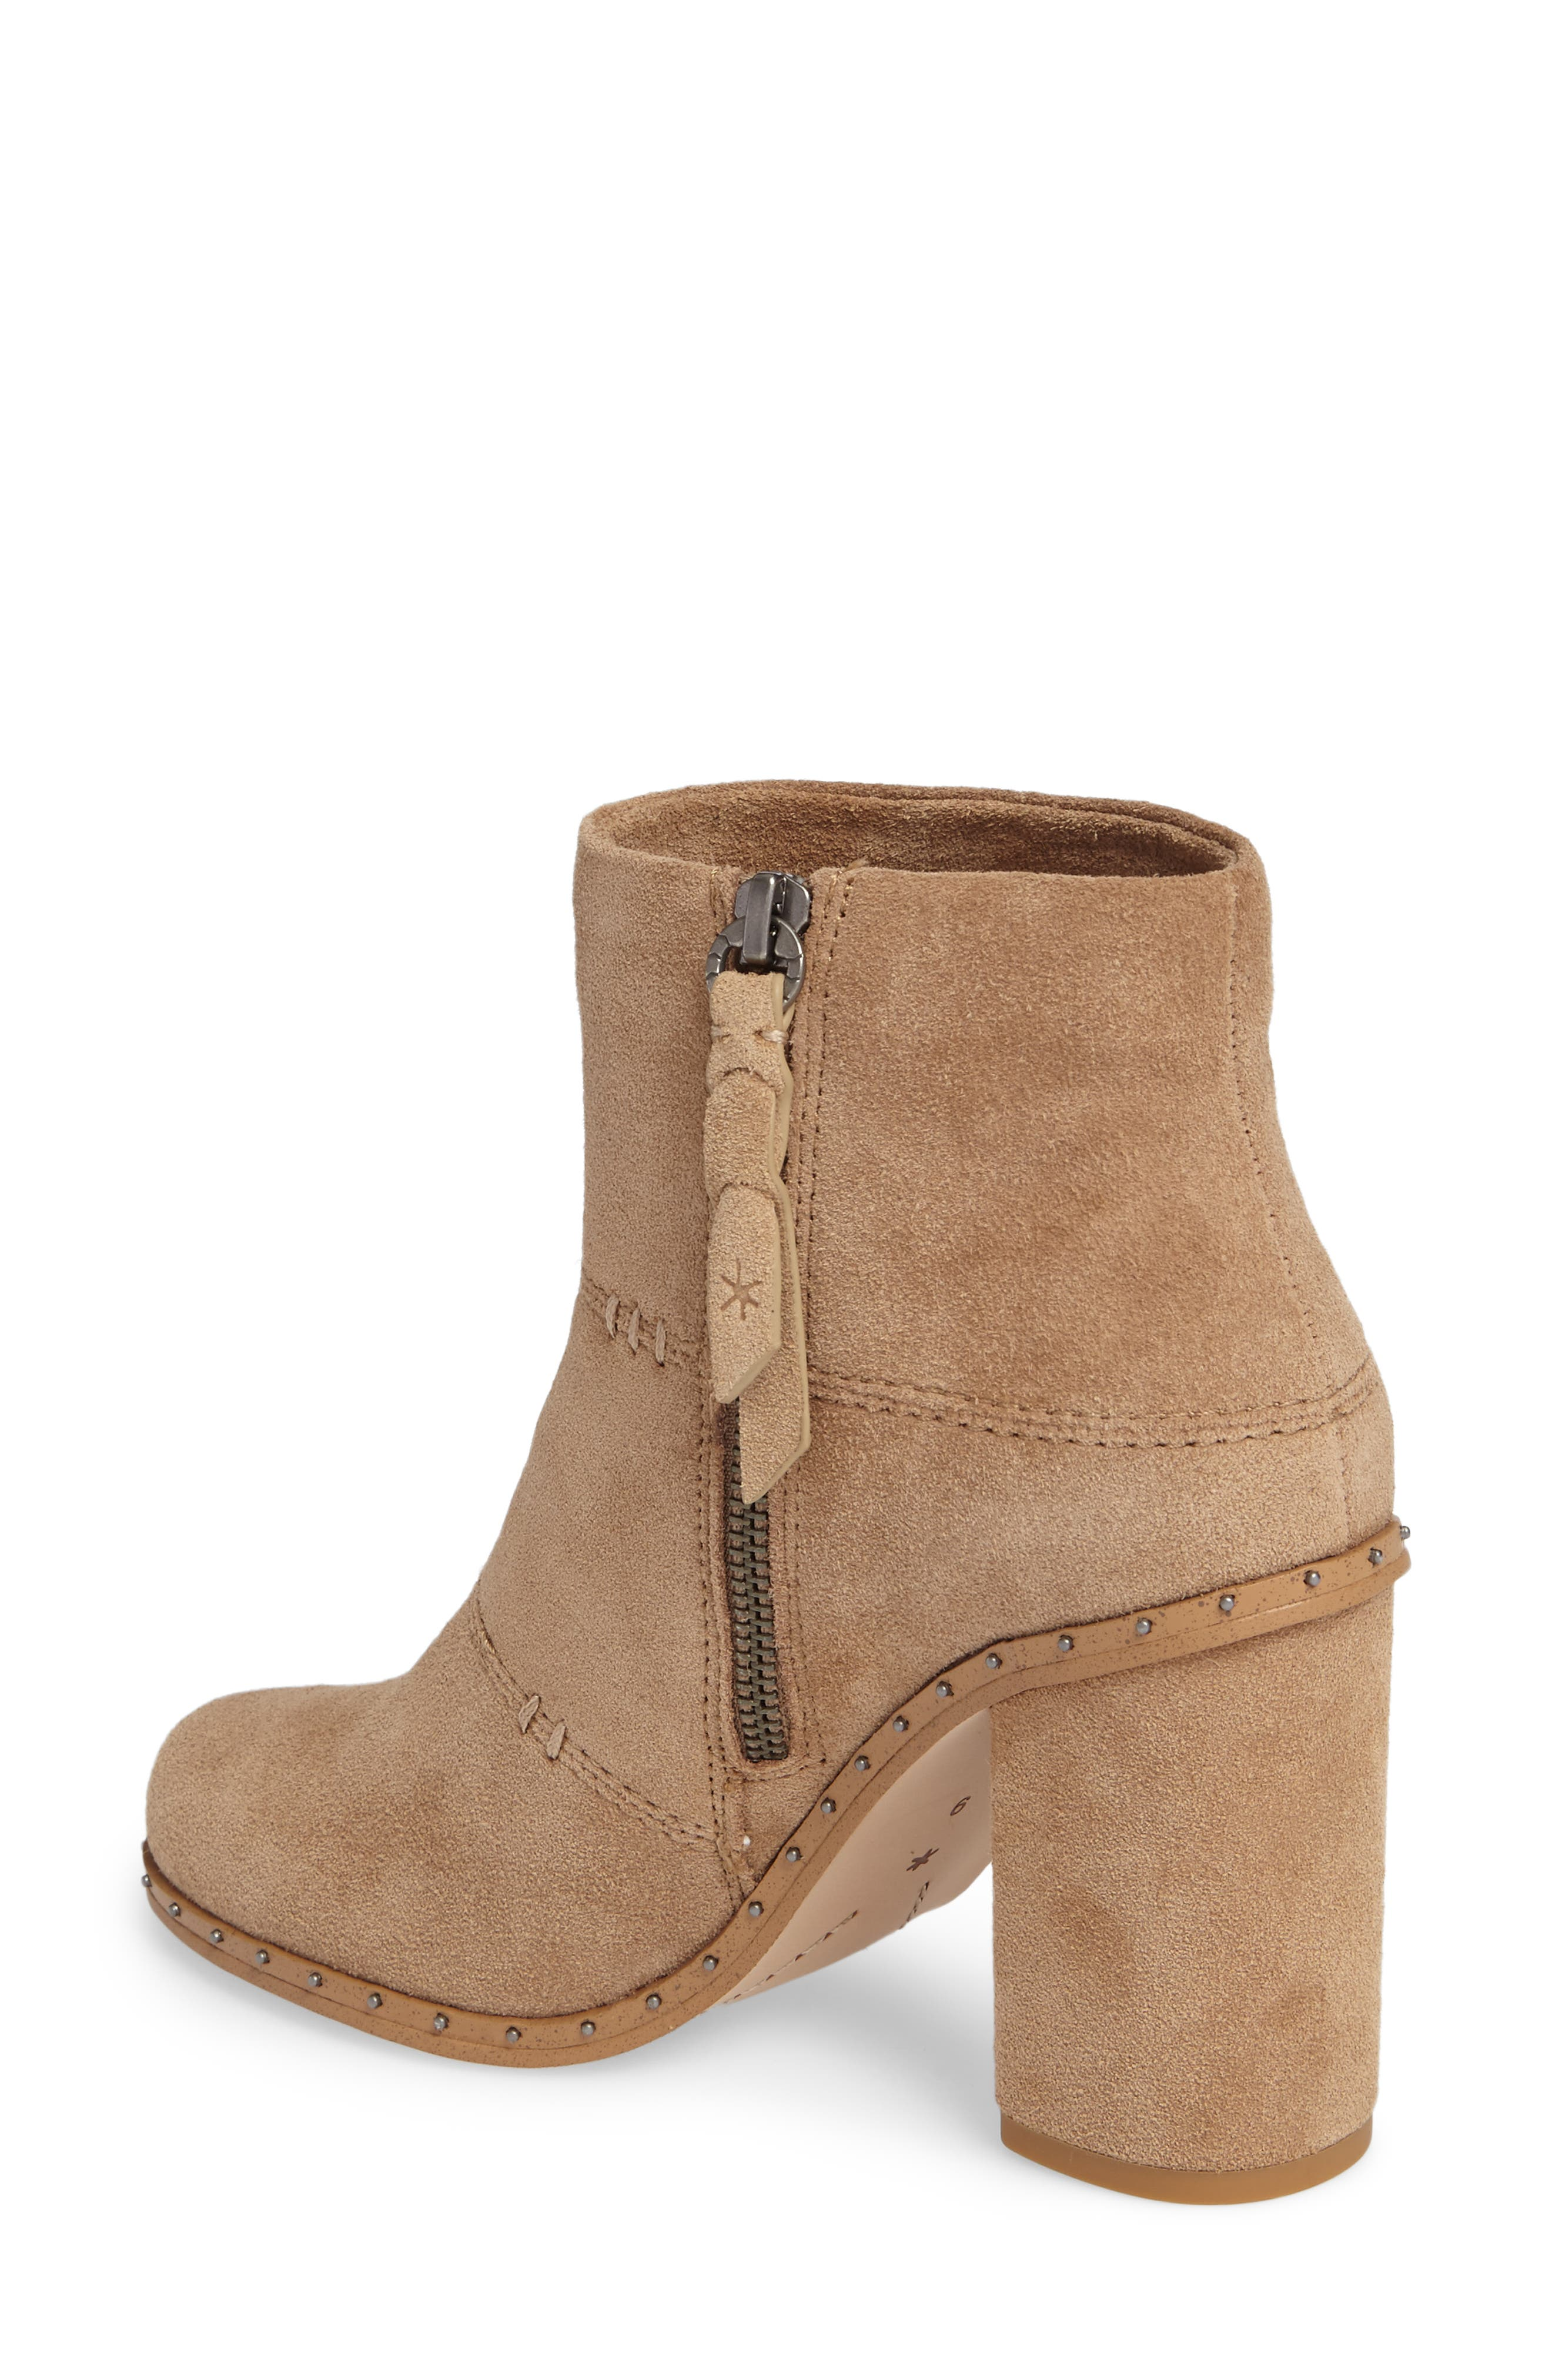 Rita Bootie,                             Alternate thumbnail 2, color,                             Light Taupe Suede